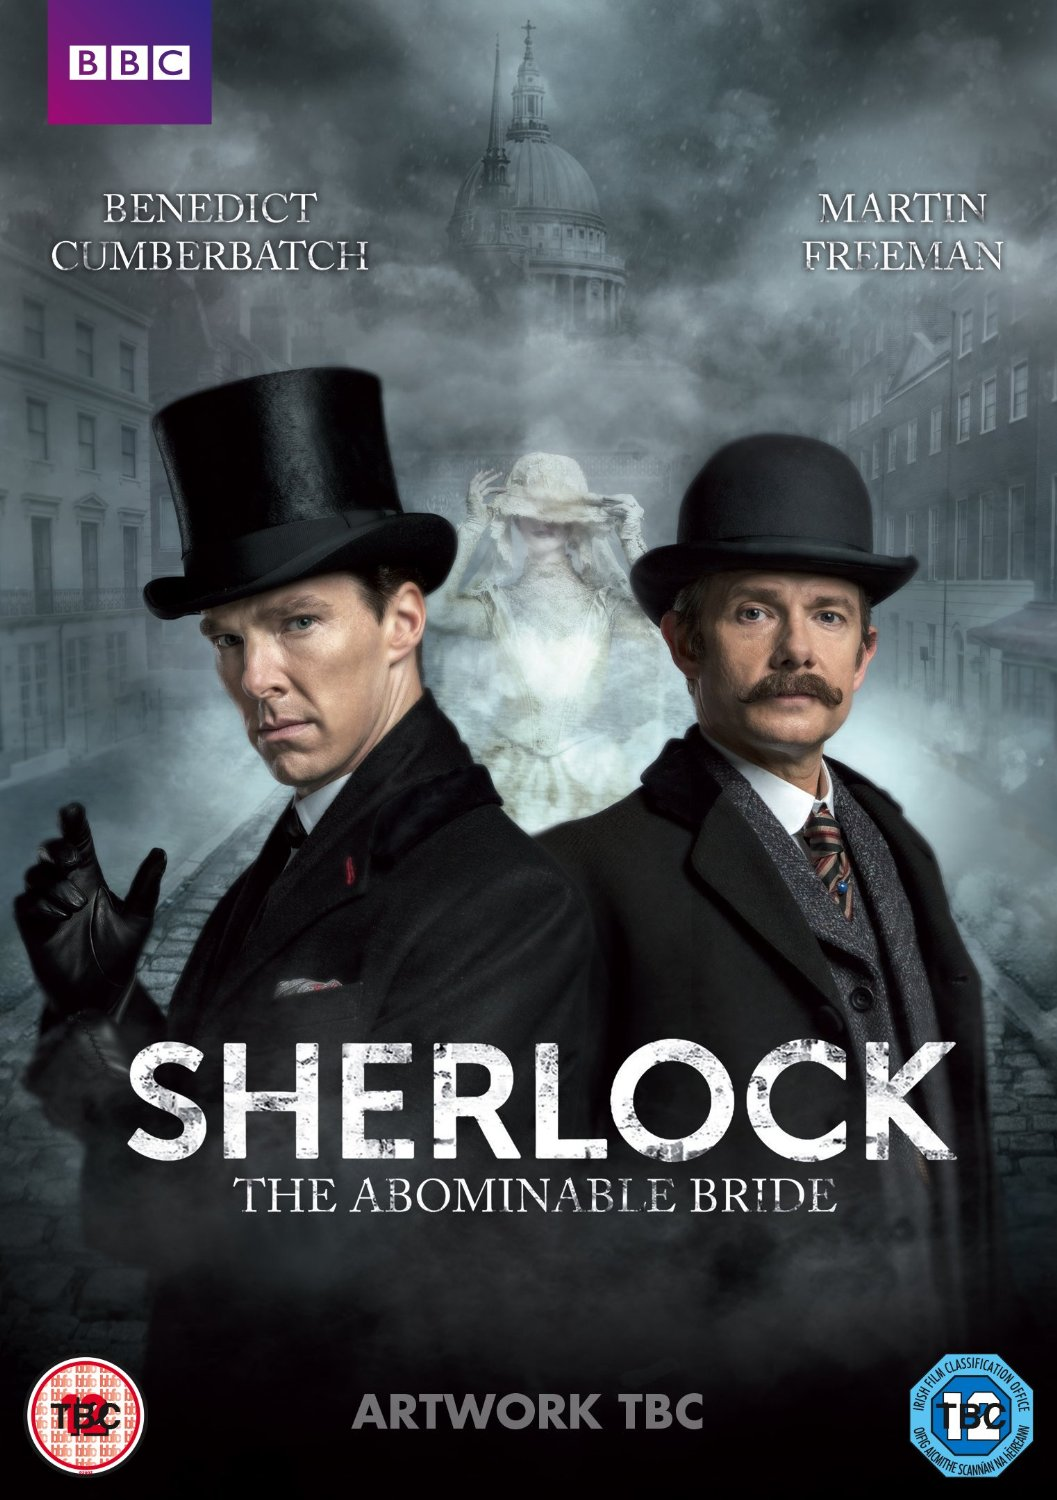 Sherlock - The Abominable Bride (2016)